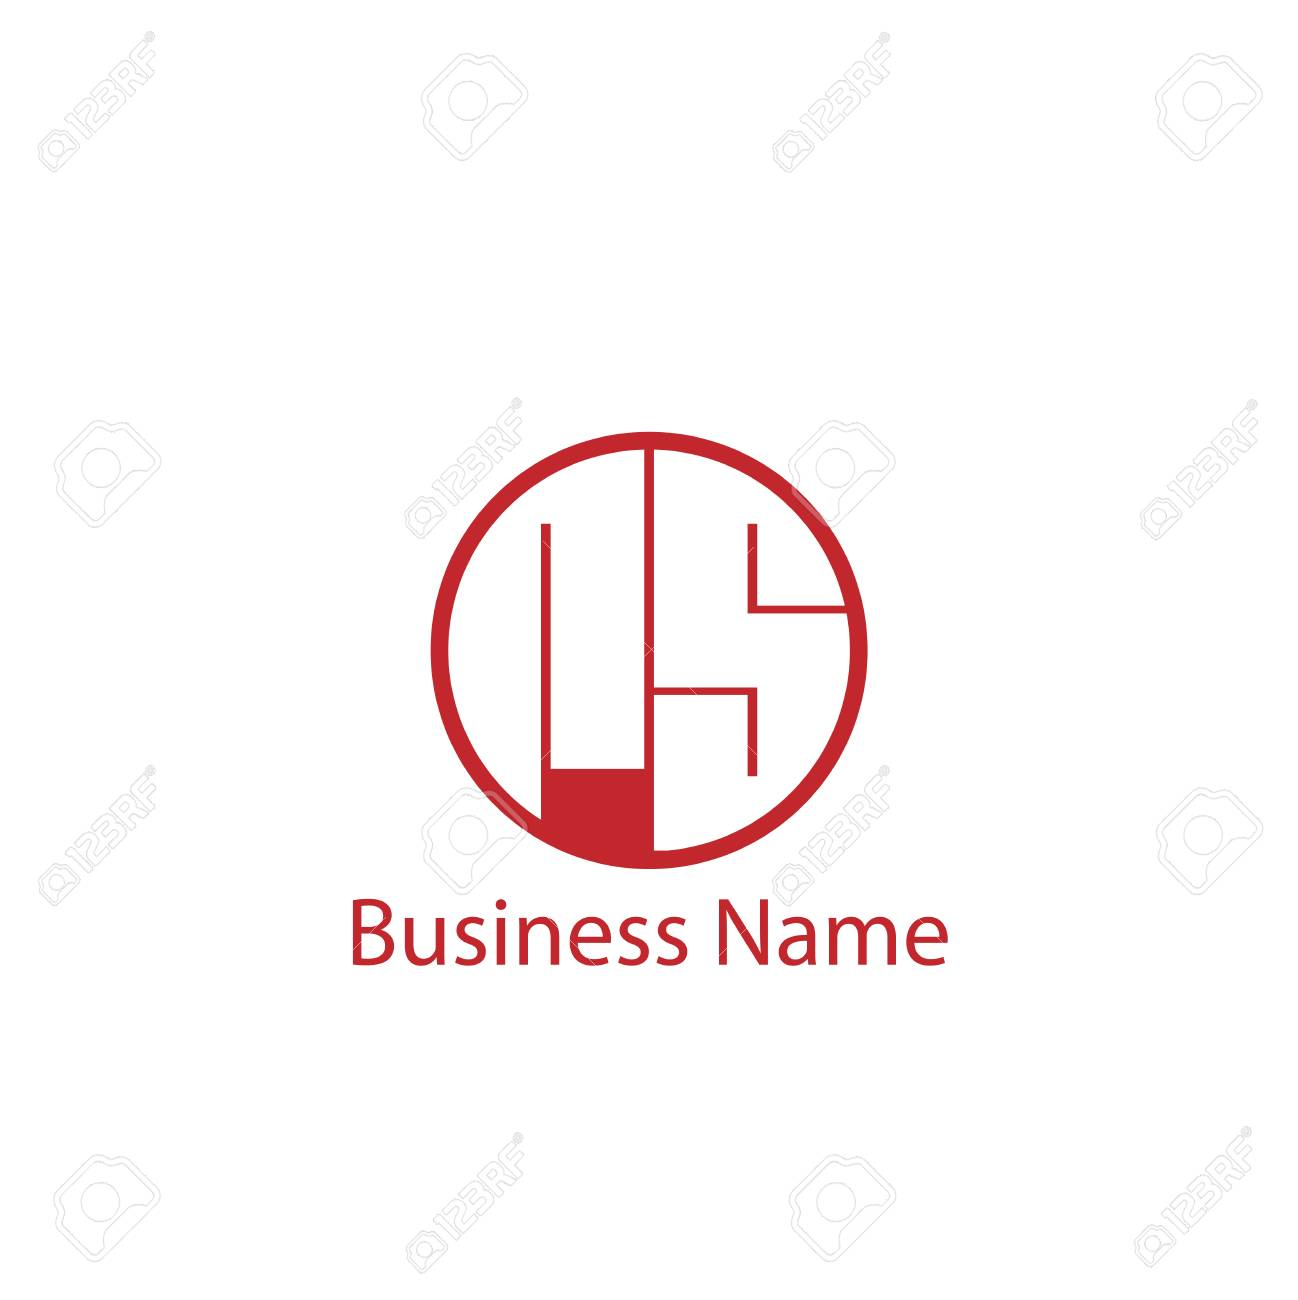 Initial Letter RS Logo Template Design - 110260037